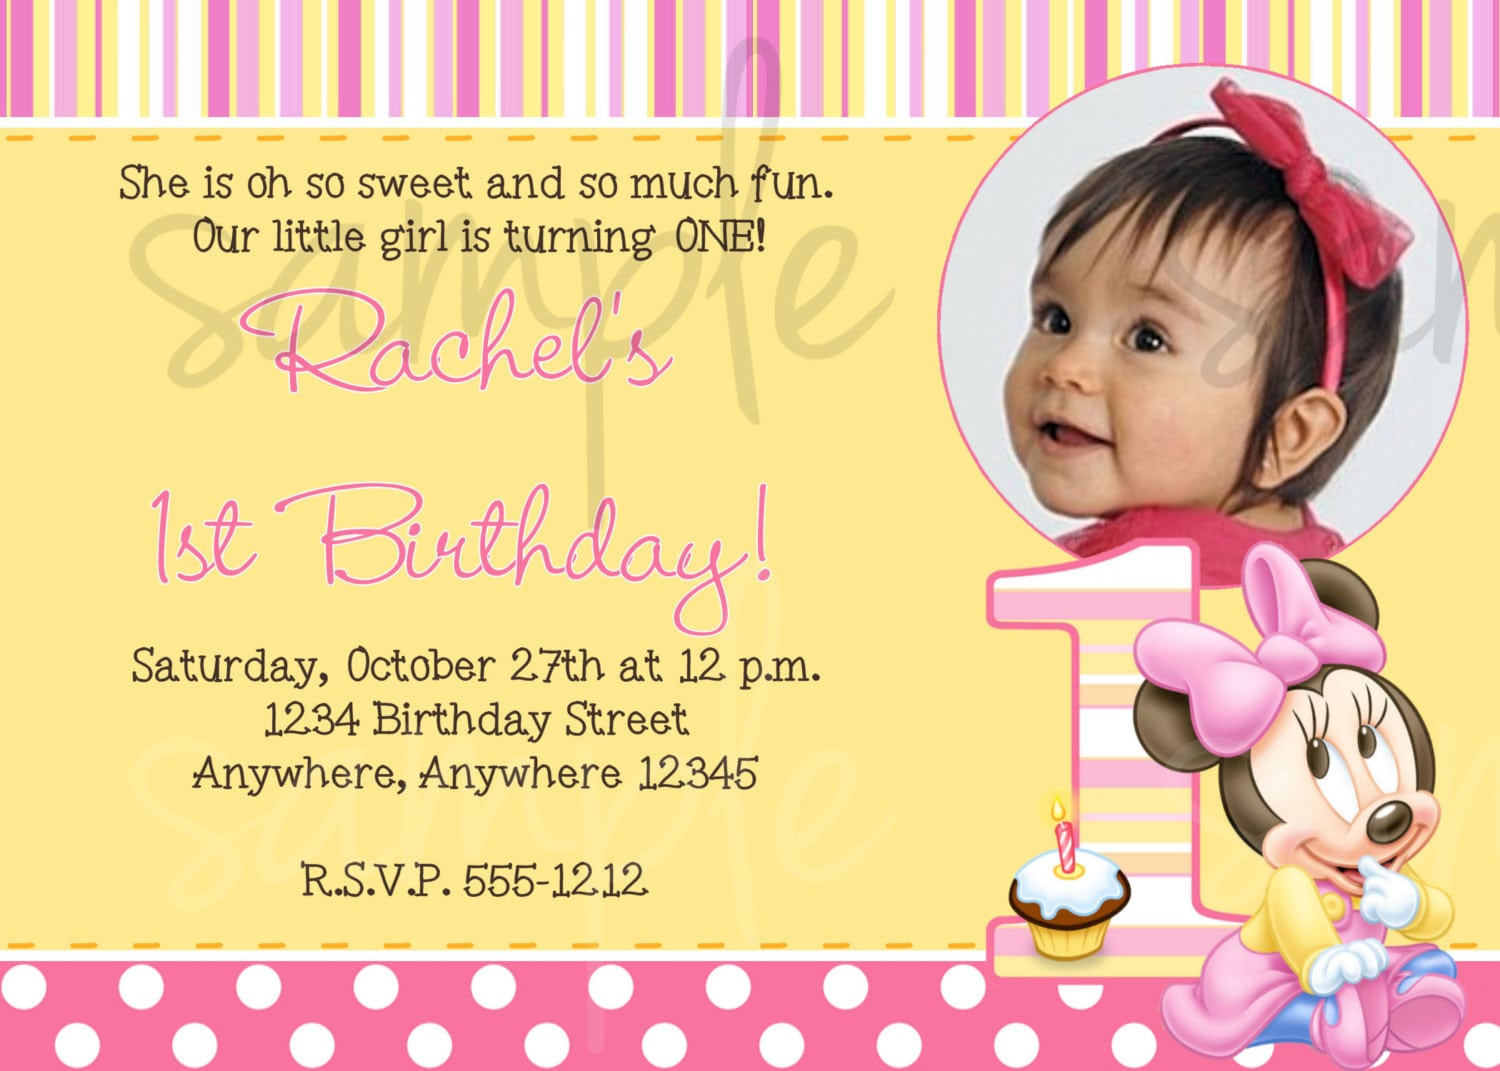 Invitation for birthday party quotes mickey mouse invitations invitation for birthday party quotes stopboris Gallery